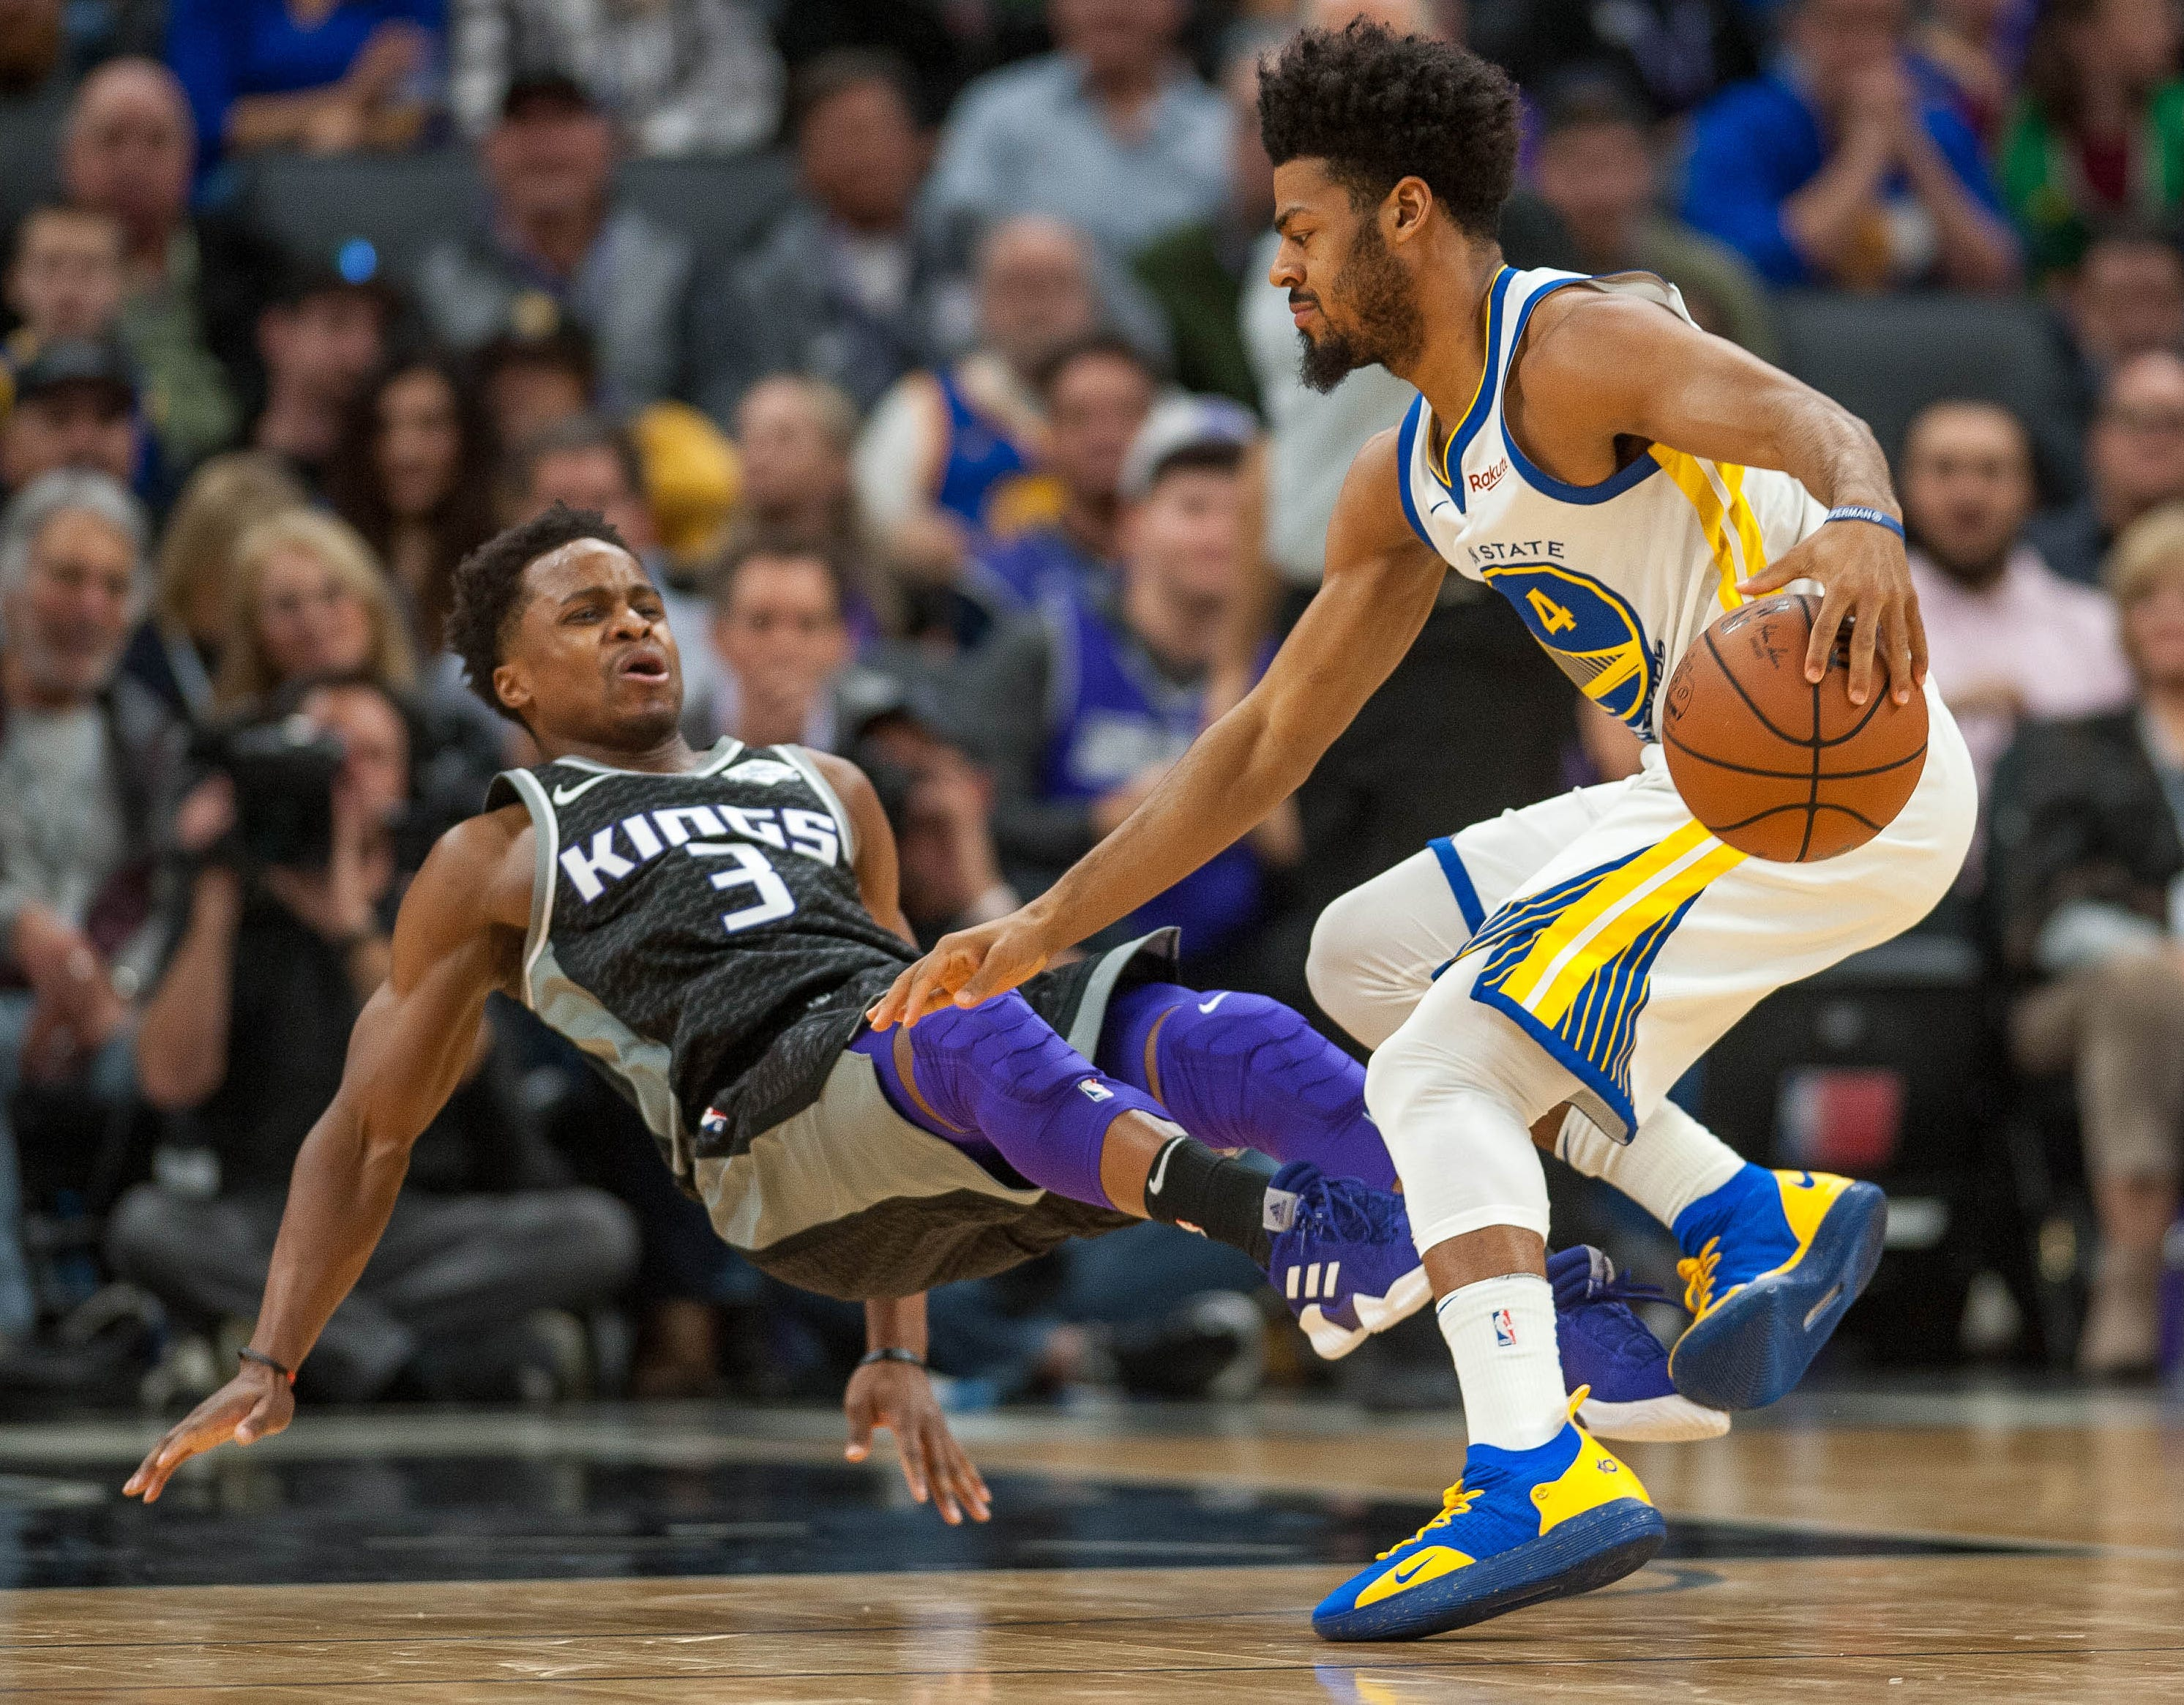 Dec. 14: Kings guard Yogi Ferrell (3) falls to the floor while defending Warriors guard Quinn Cook (4) on the perimeter during the fourth quarter in Sacramento.